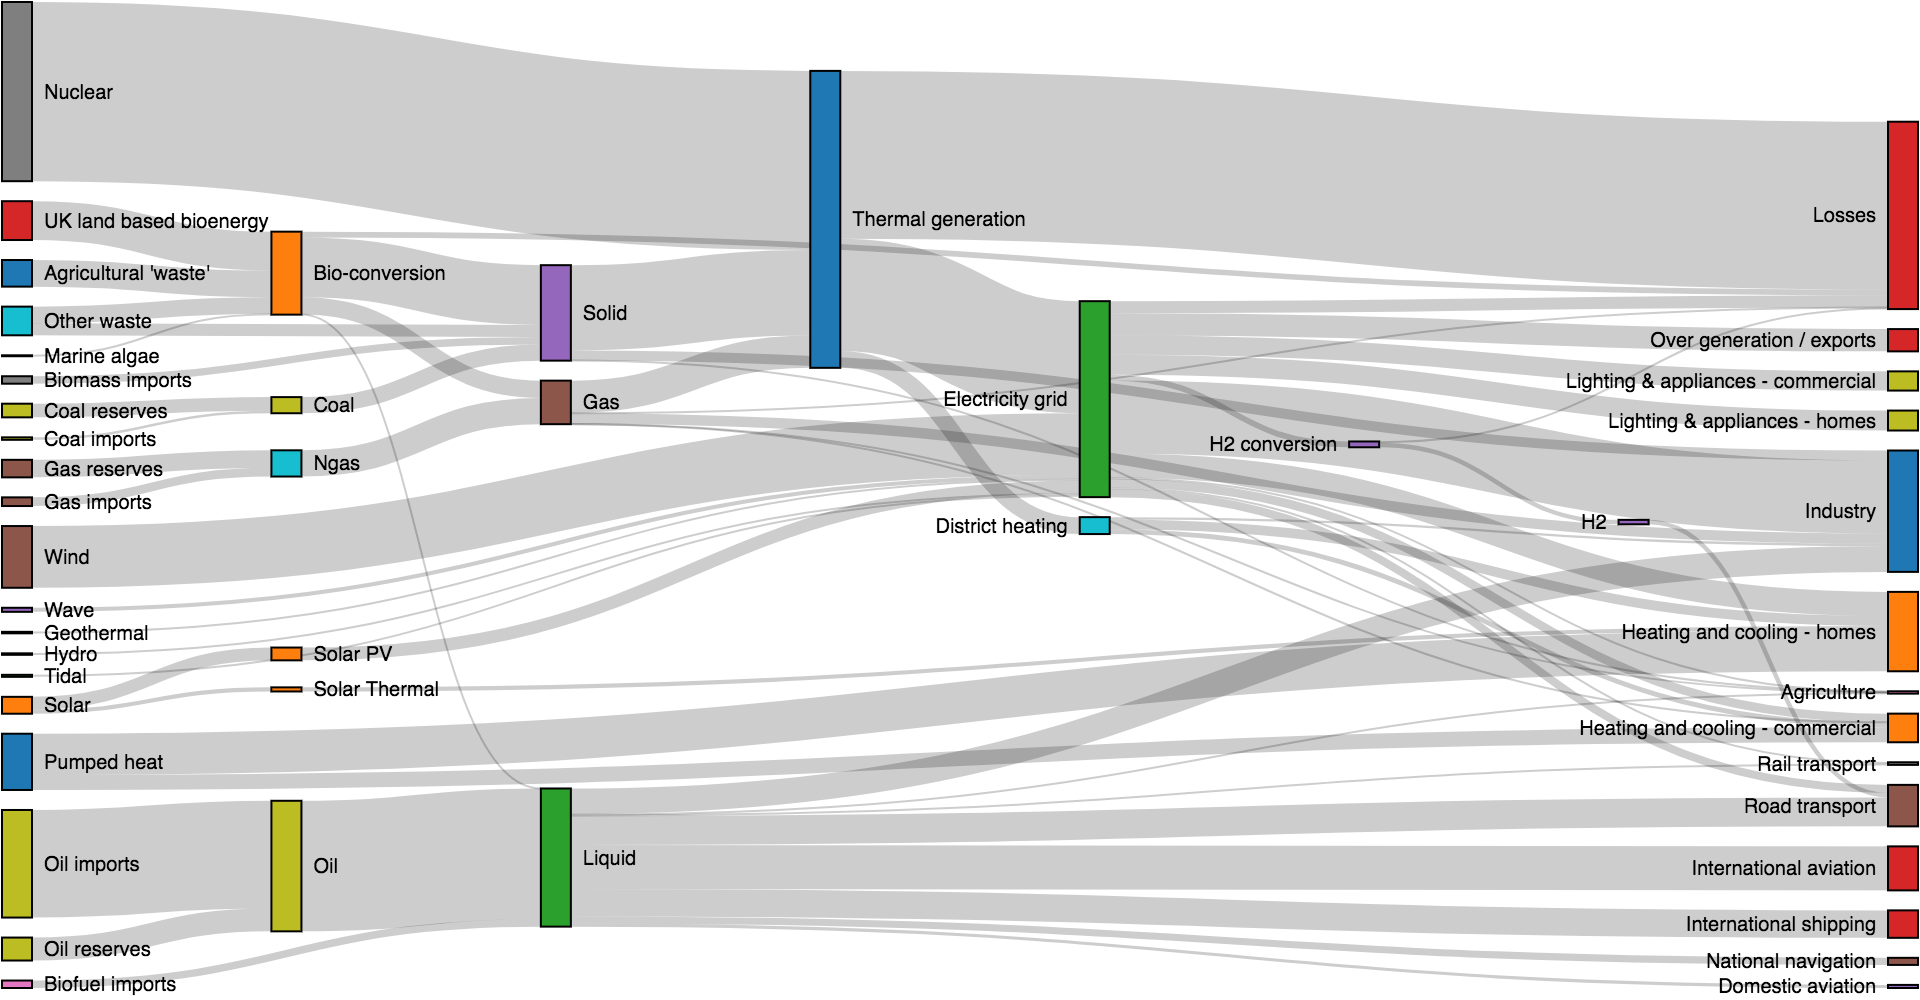 how to do a sankey diagram speakon nl4fc wiring github d3 visualize flow between nodes in